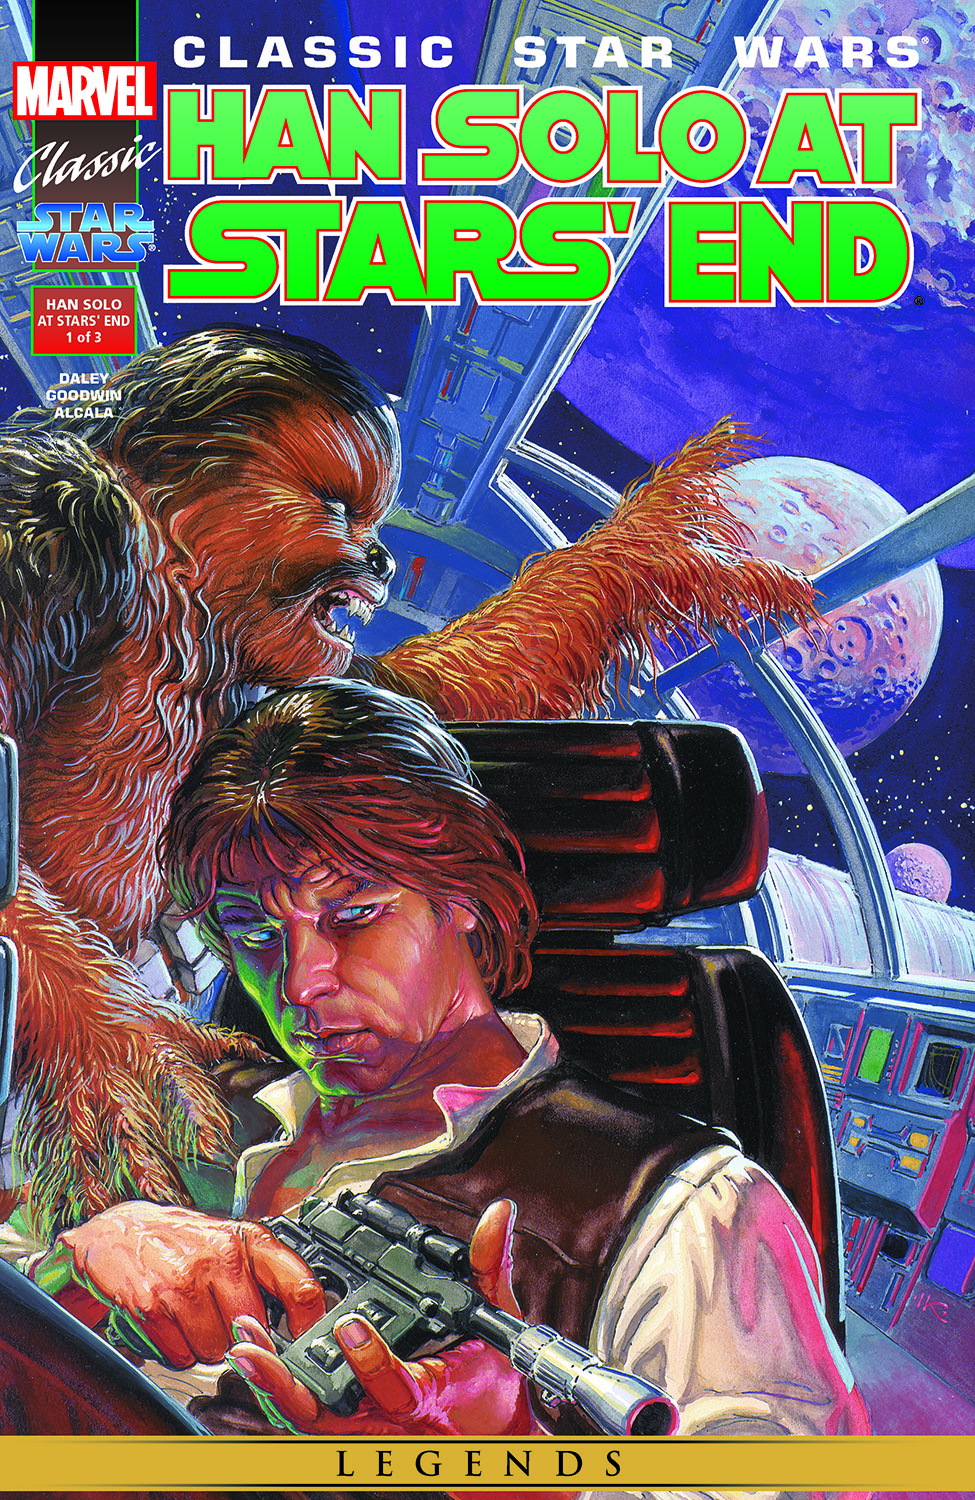 Classic Star Wars: Han Solo at Stars' End (1997) #1